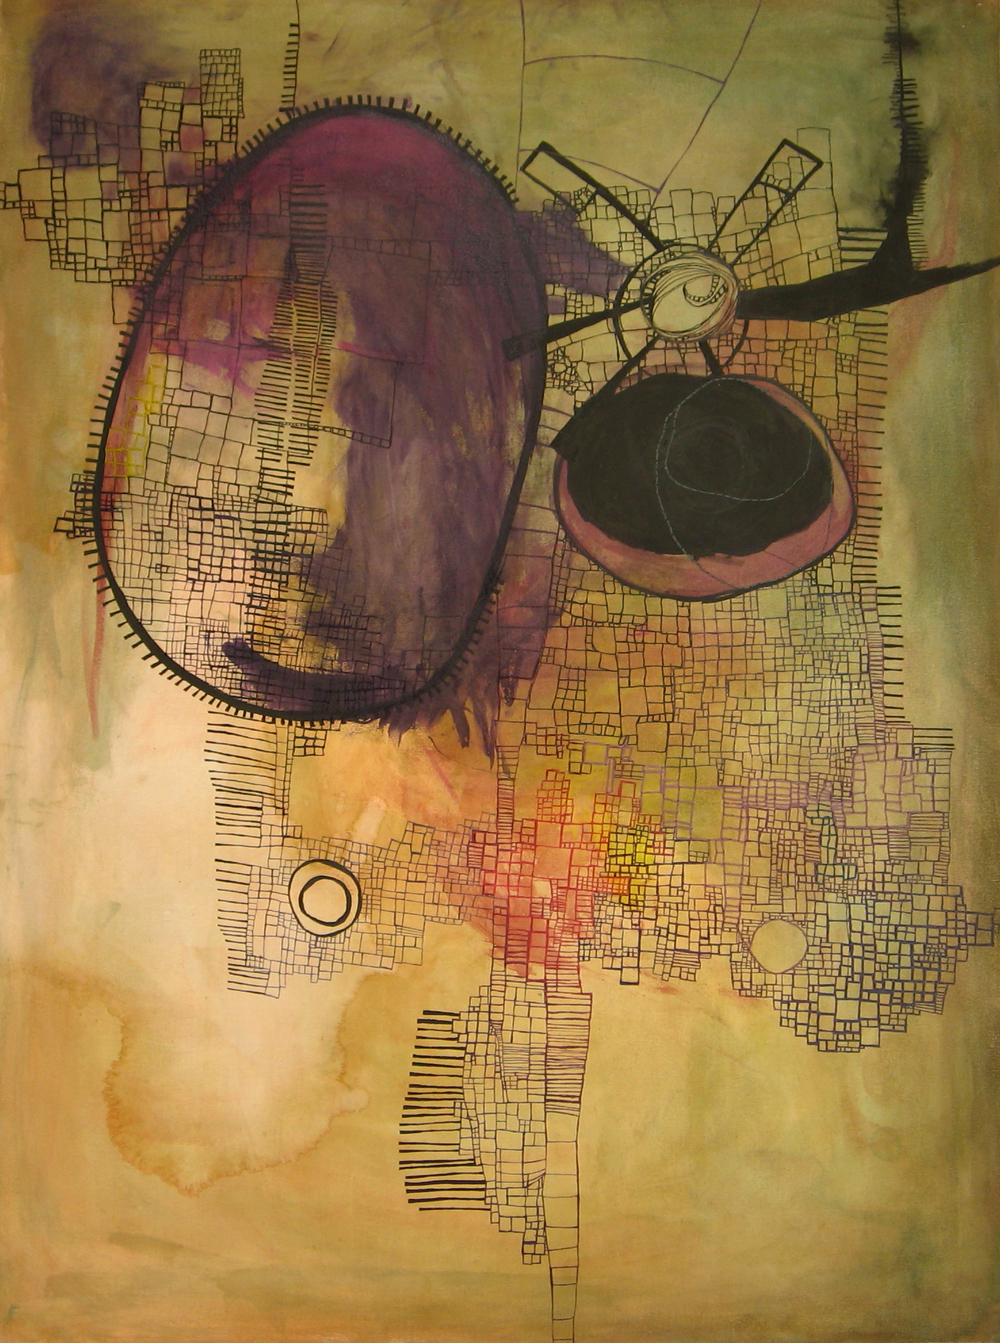 embroidery, ink & acrylic on canvas / 2009-spring 2012